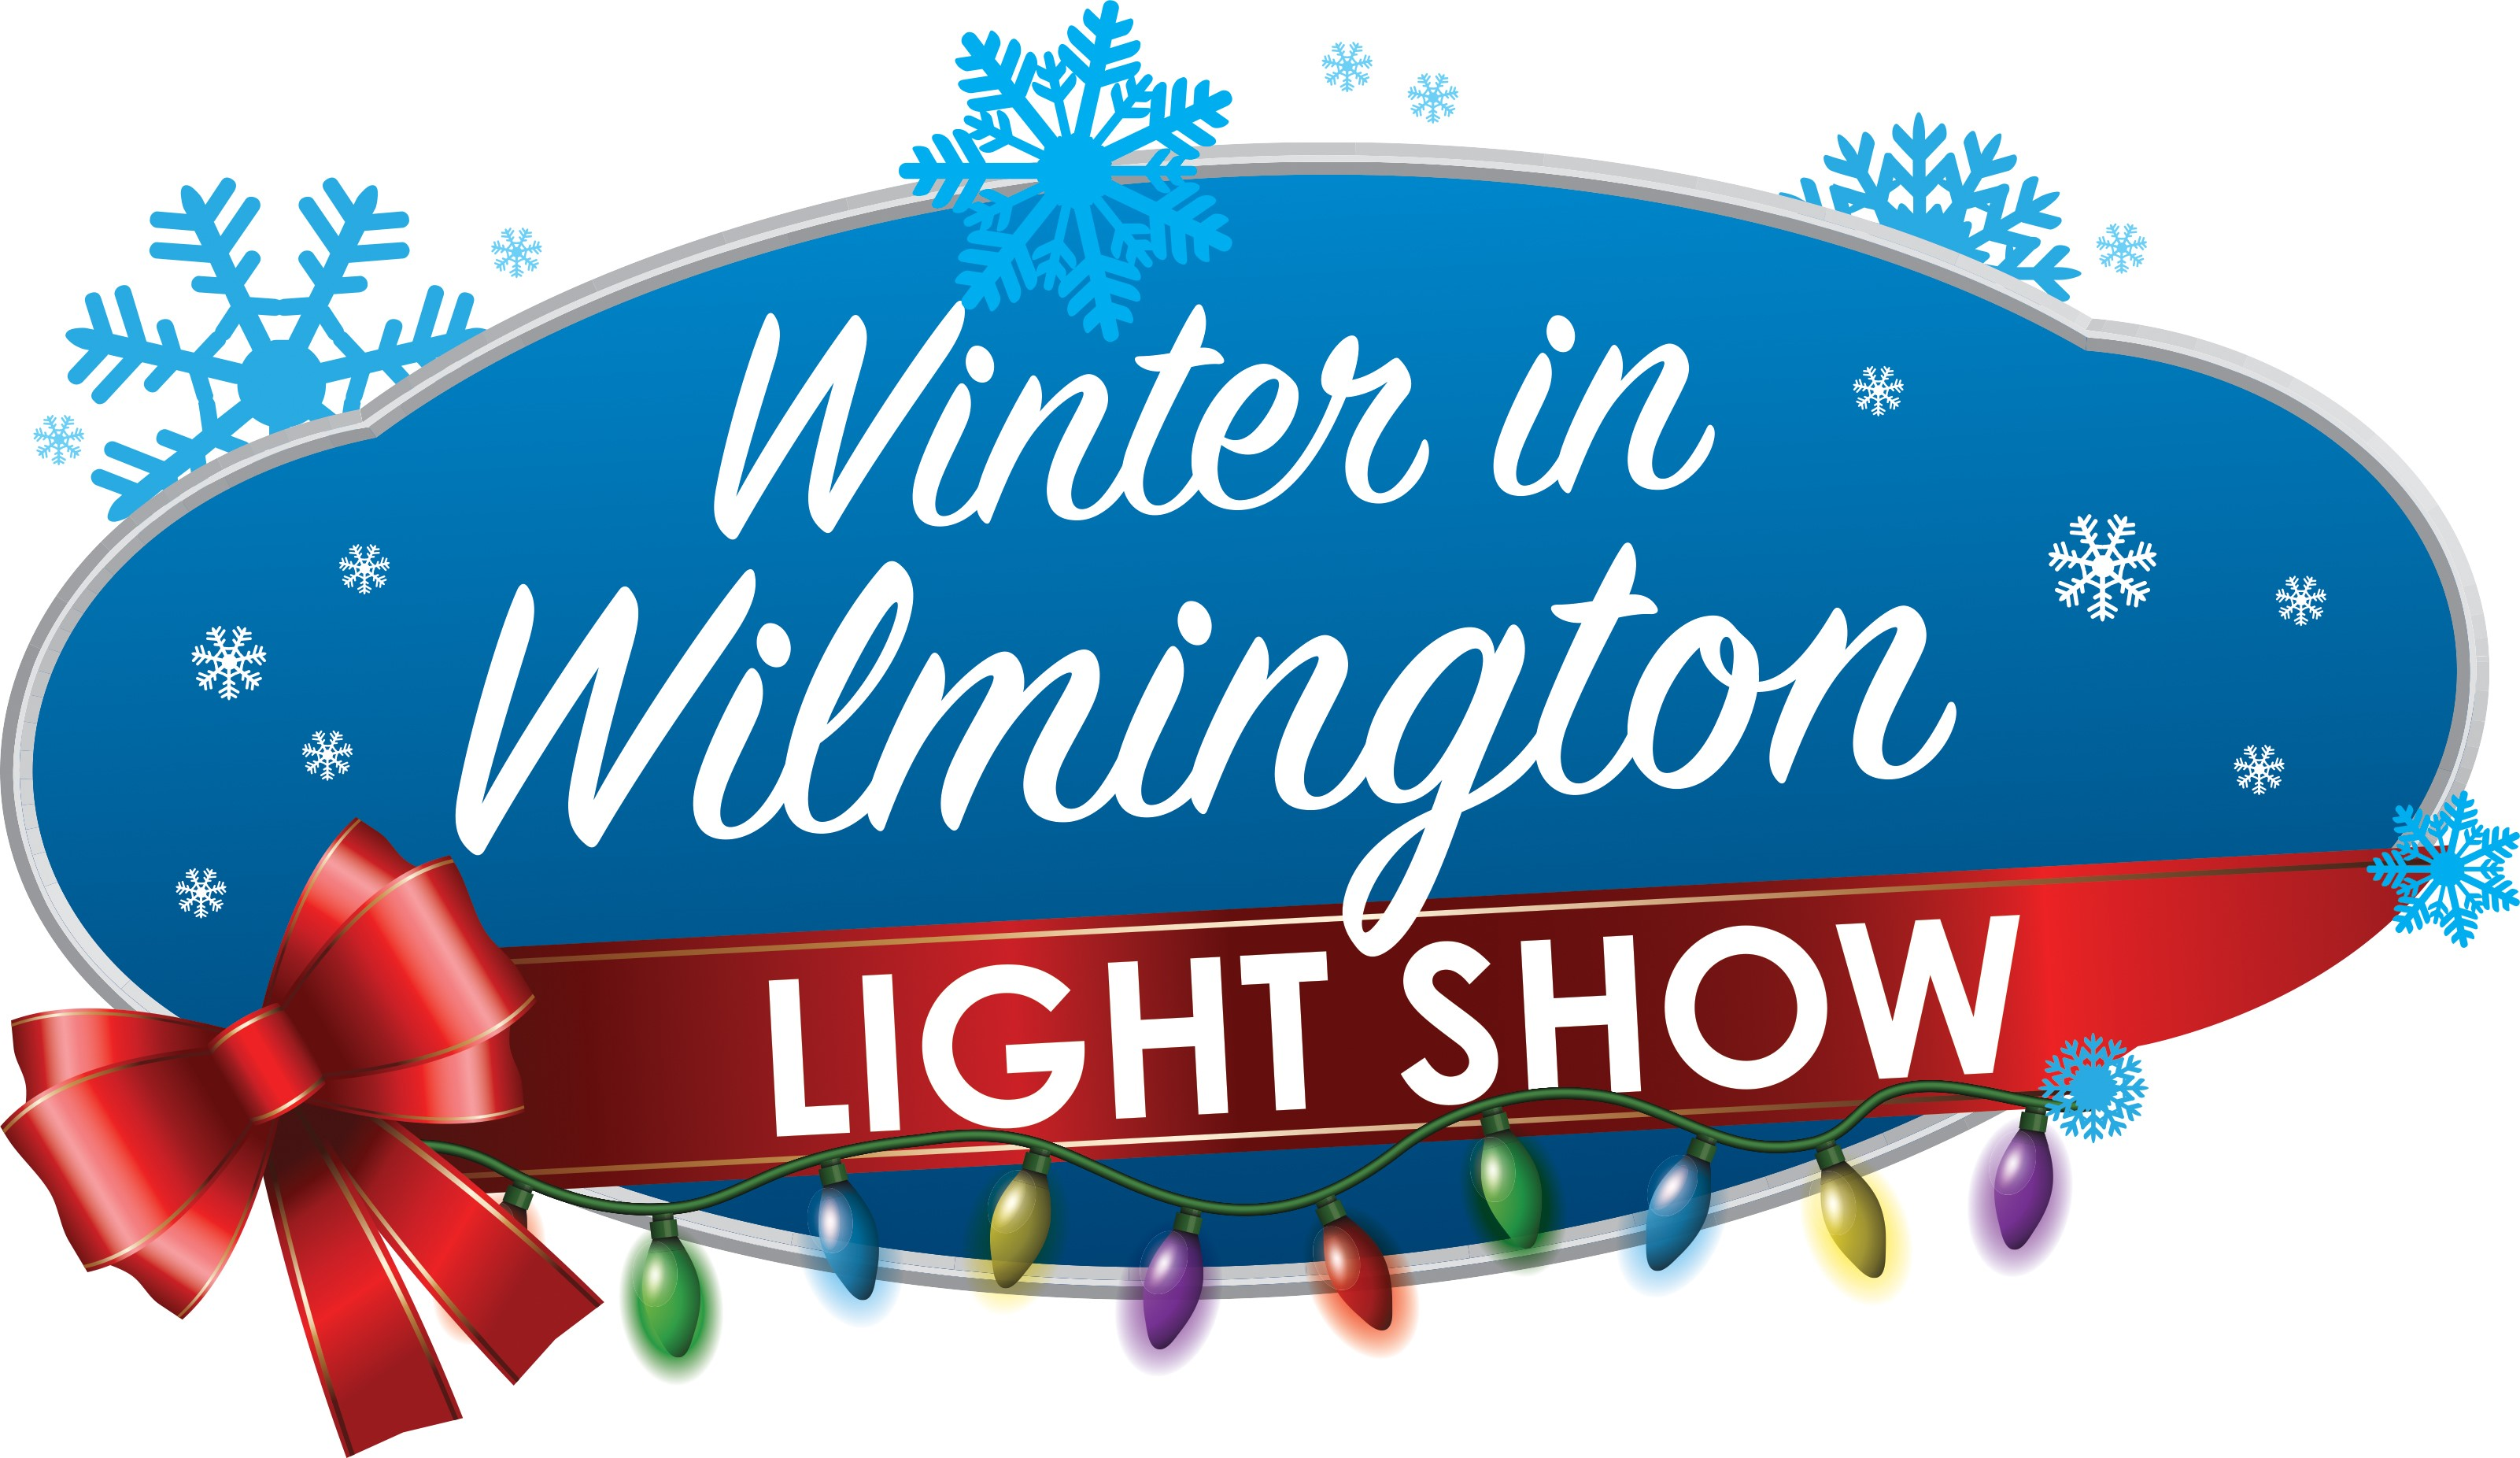 Winter in Wilmington Light Show